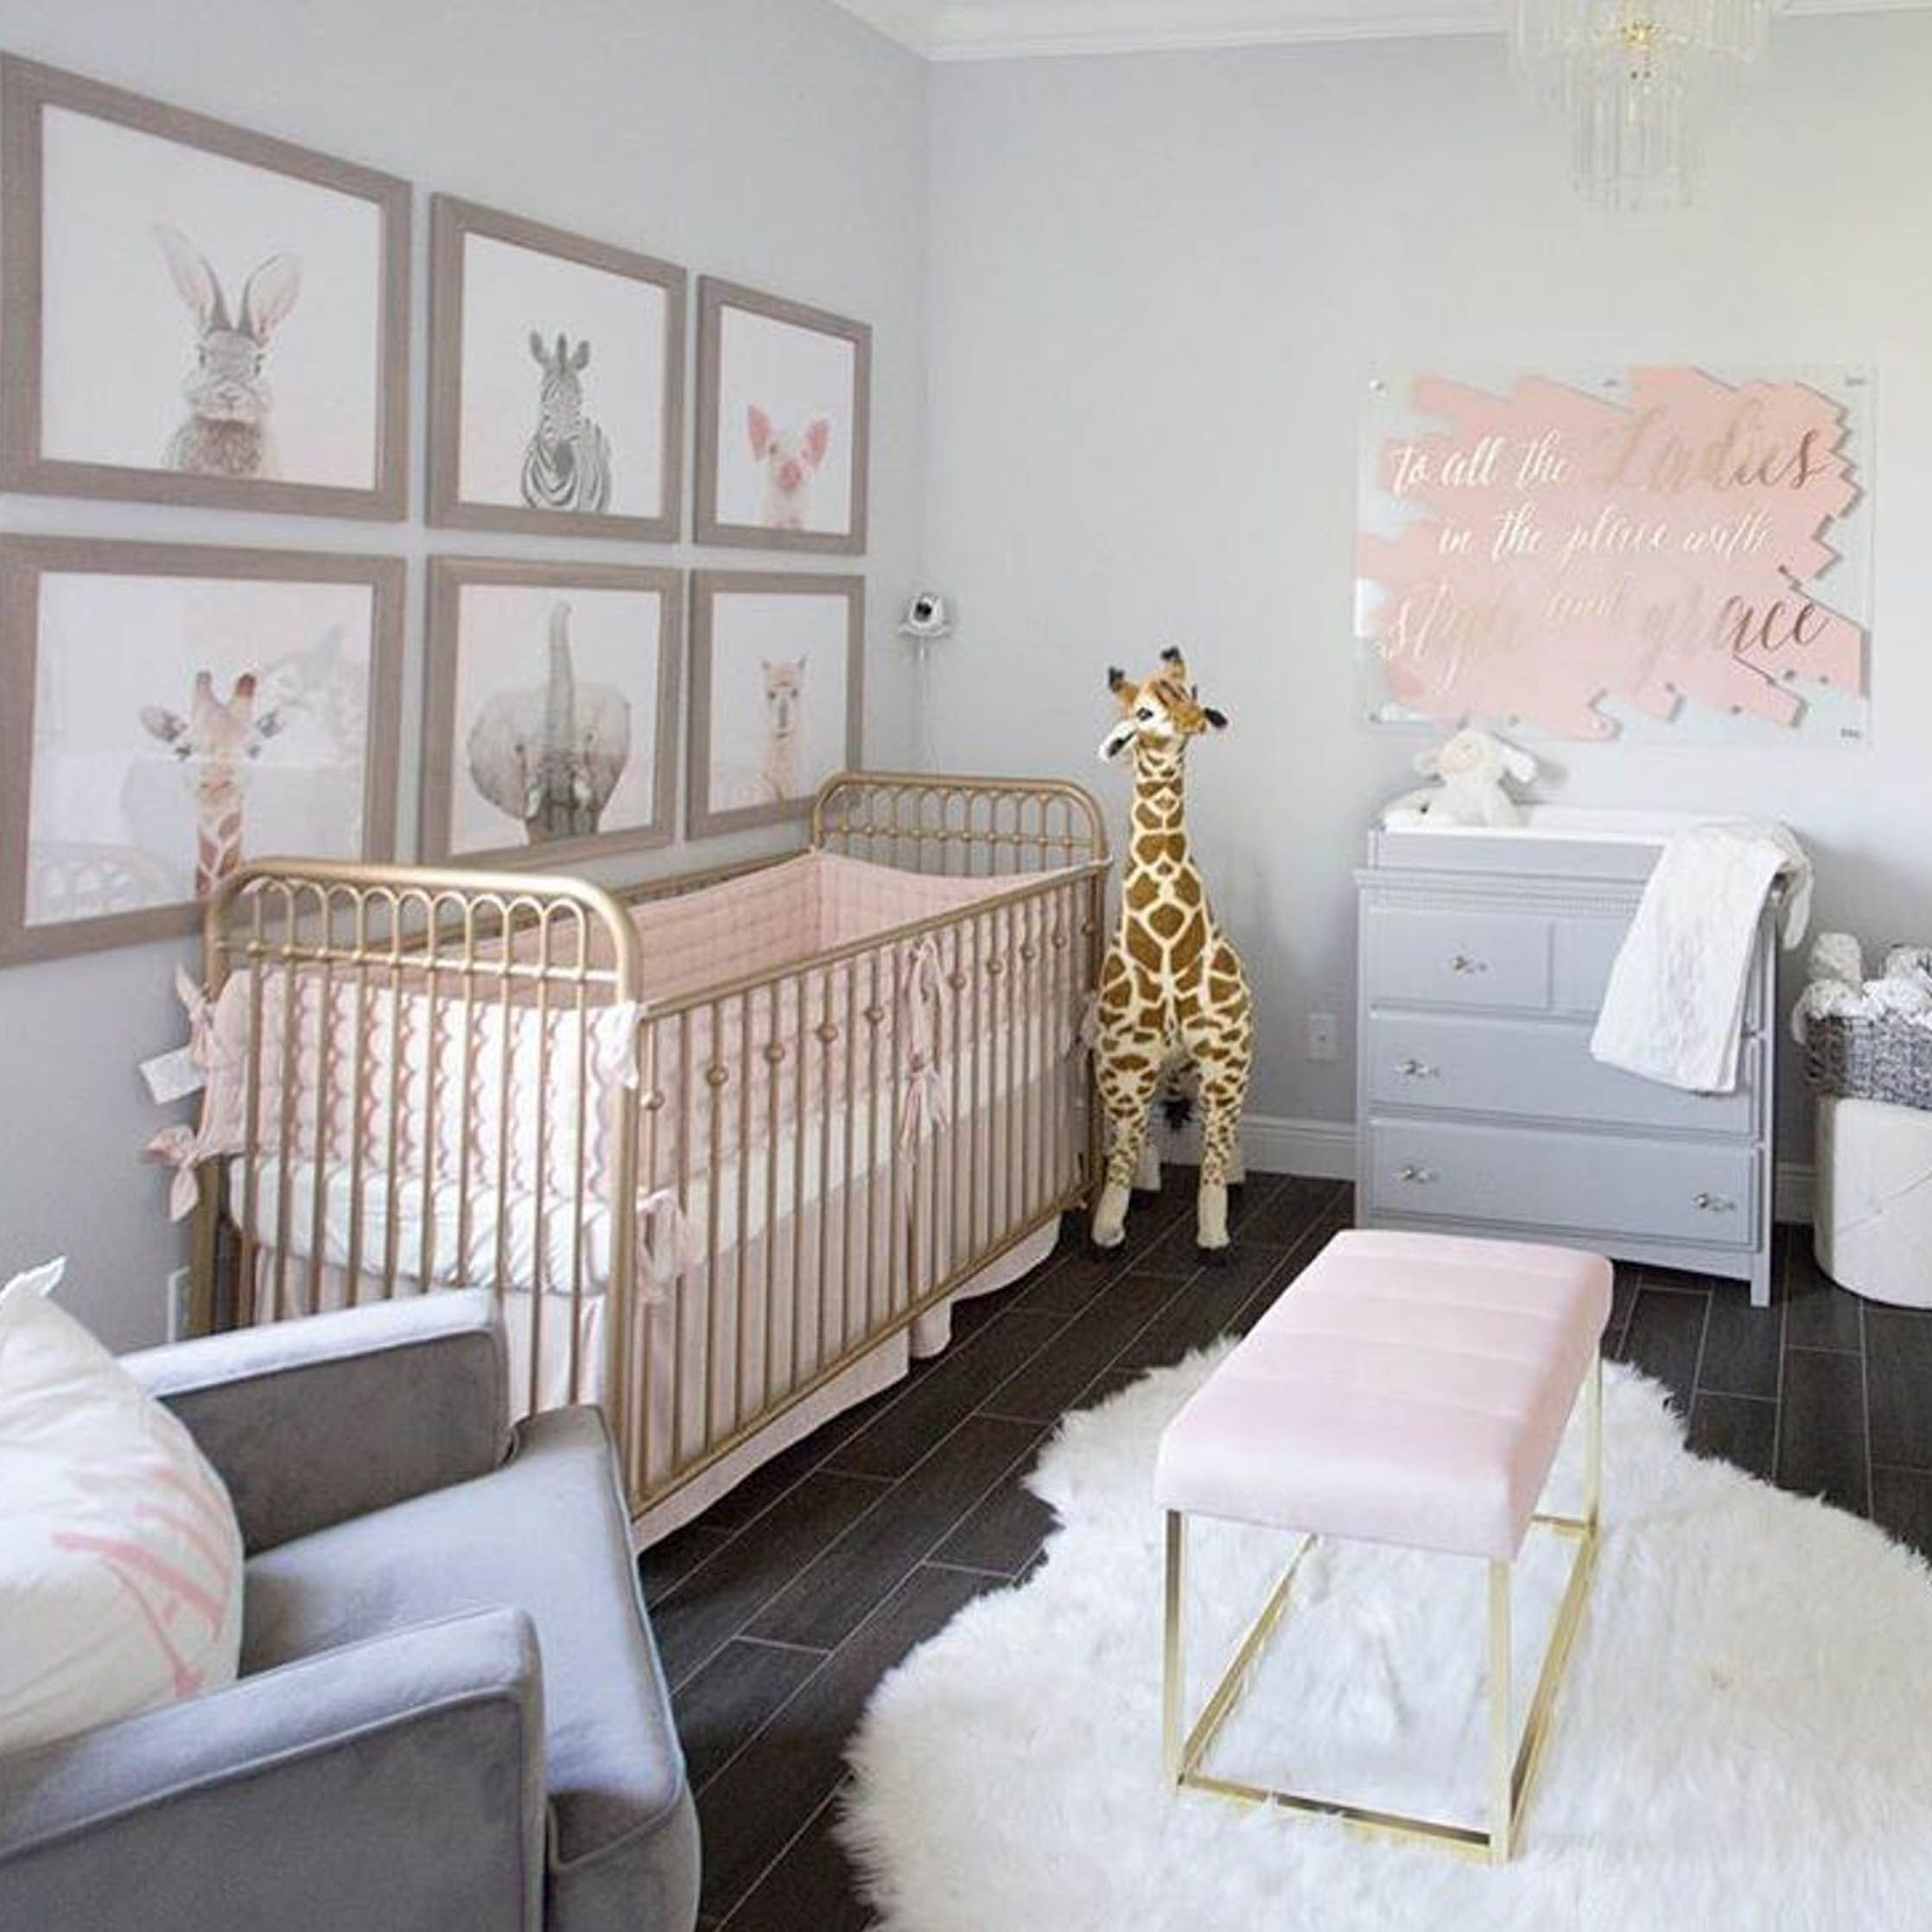 Heres whats trending in the nursery baby girl nursery ideas nursery baby girl nursery